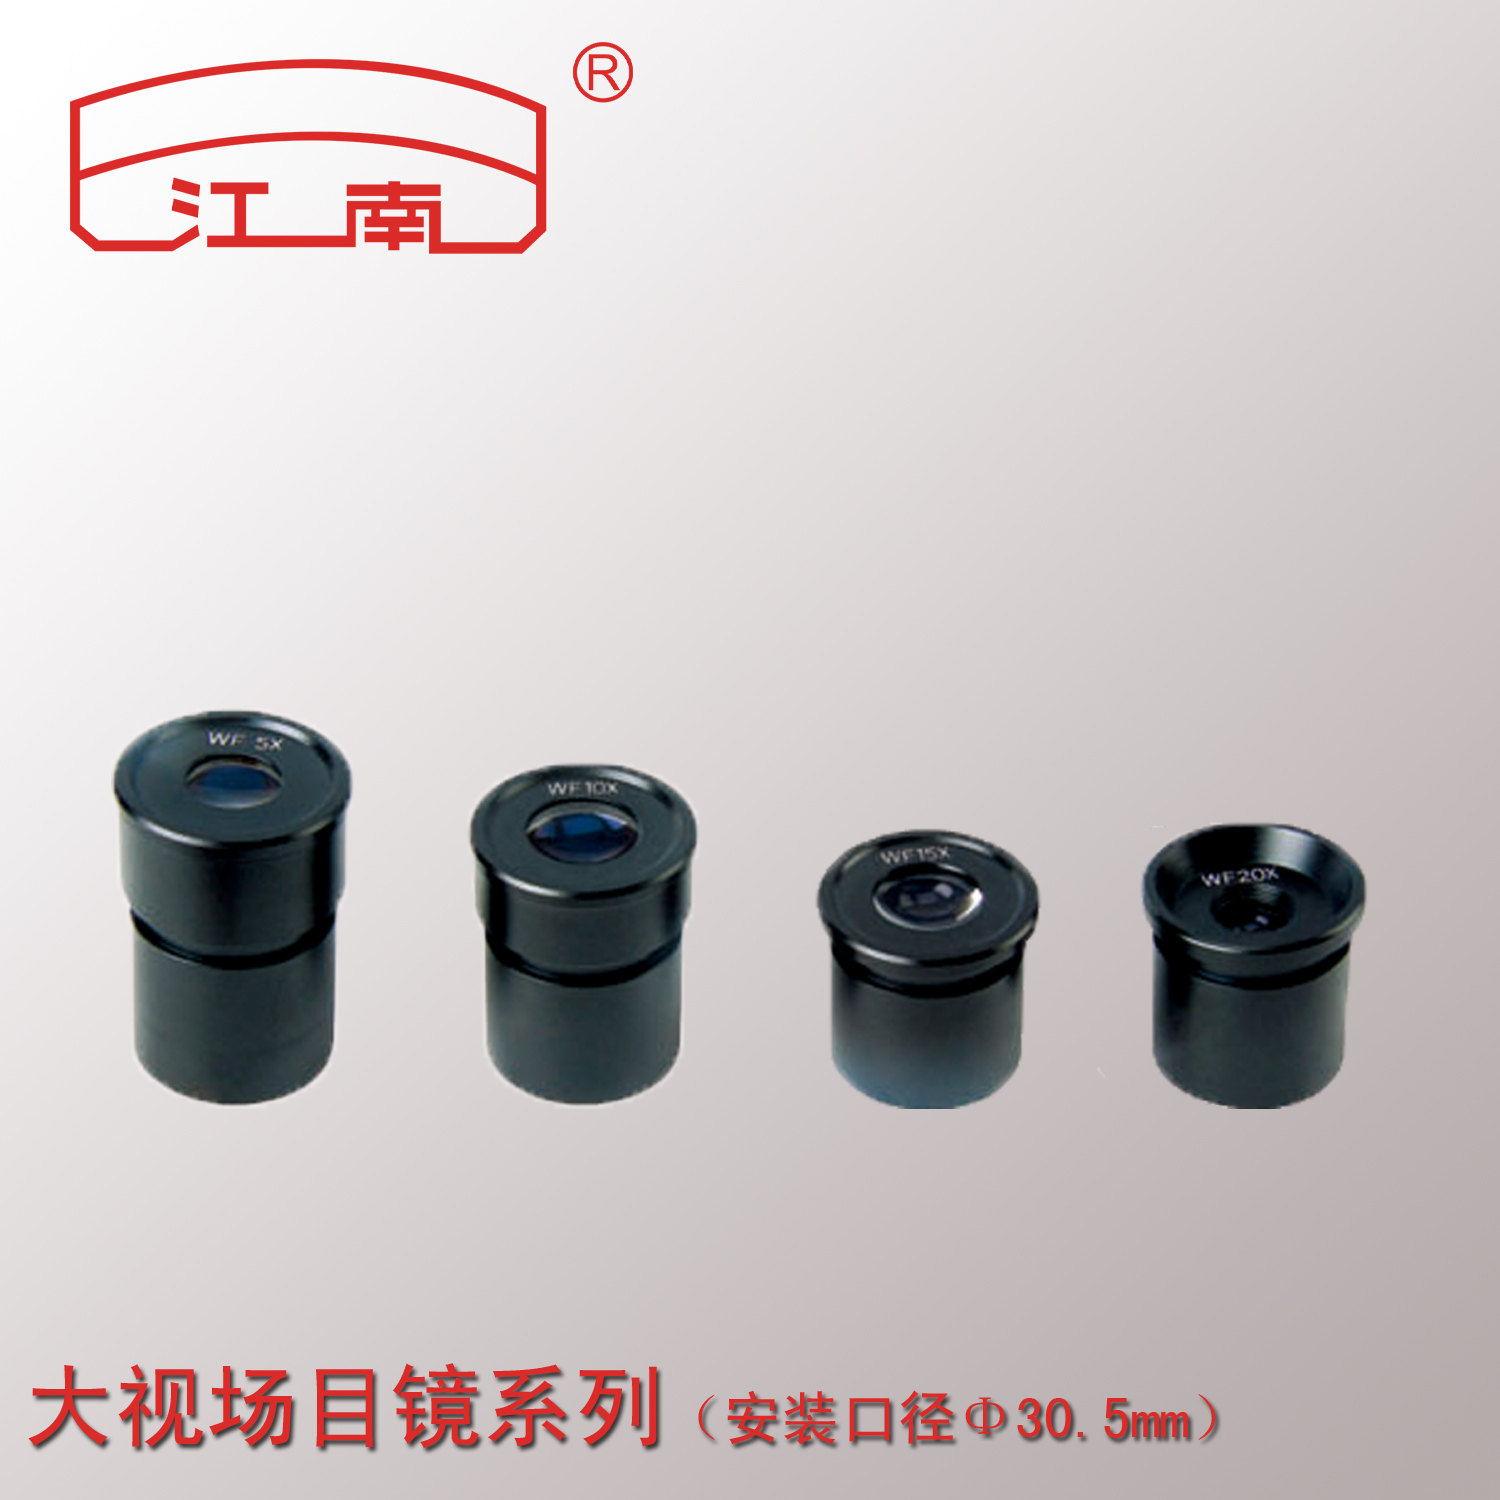 Large field eyepiece microscopes microscope accessories NTX 5 times 15 20 30.5<br><br>Aliexpress